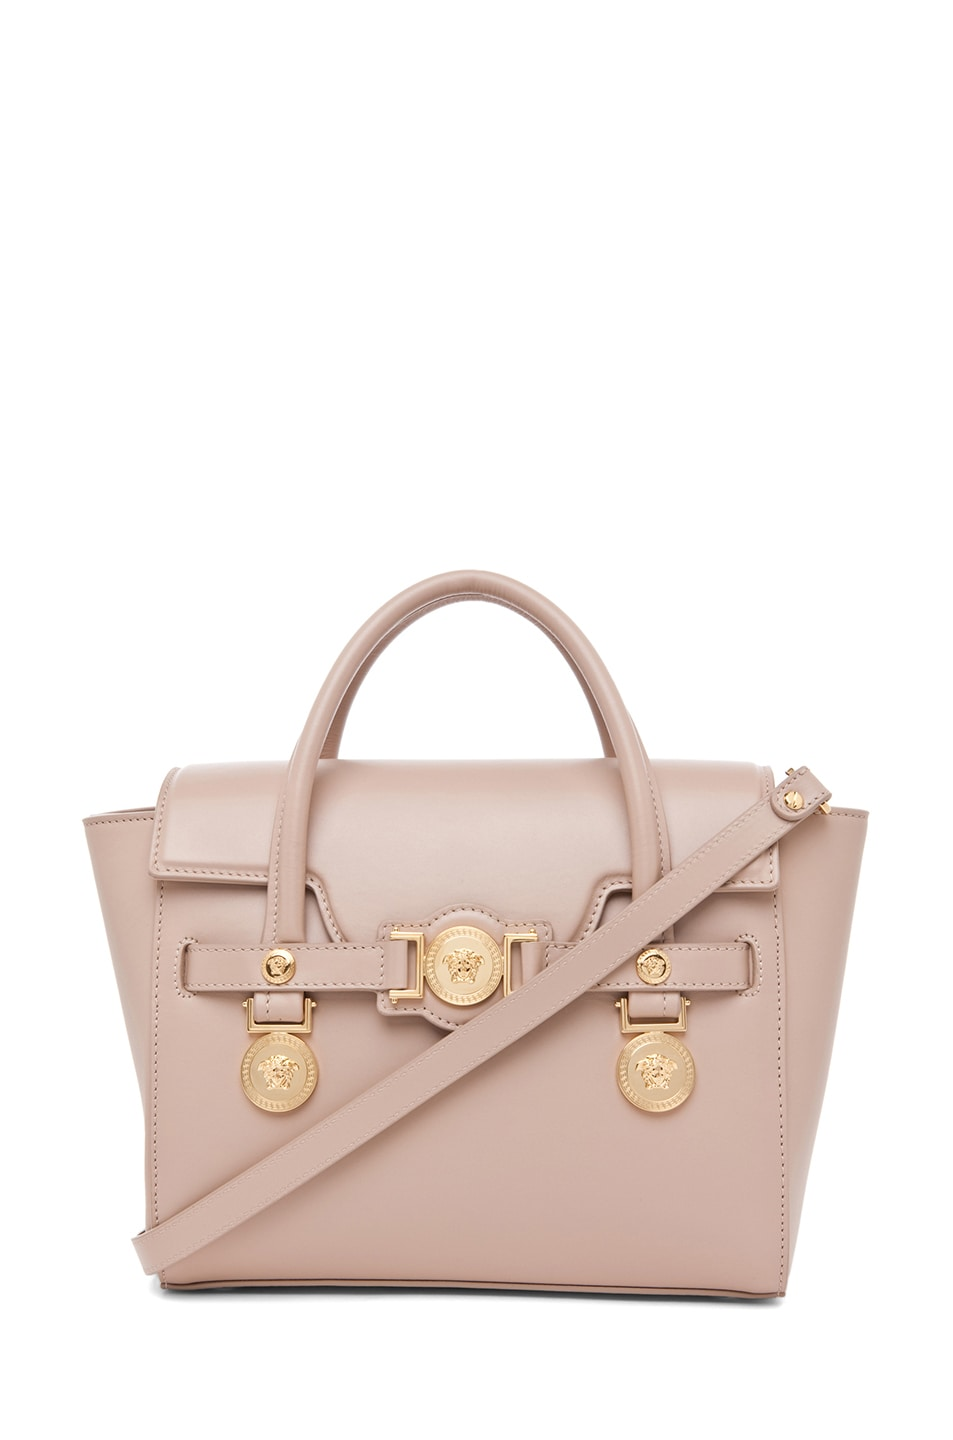 Image 1 of VERSACE Signature Handbag in Blush